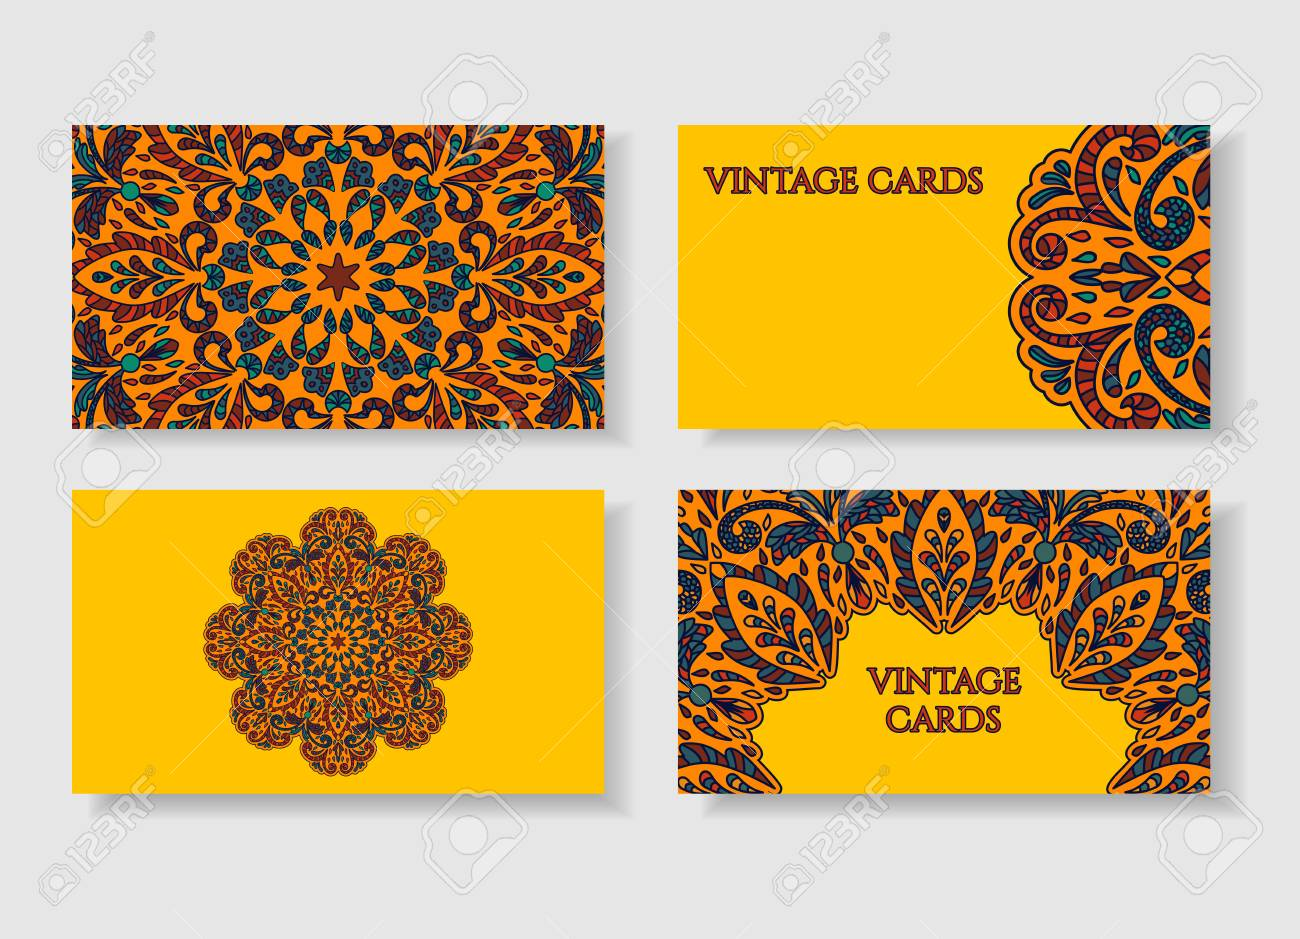 Business Card Collection. Vintage Decorative Elements. Hand Drawn ...